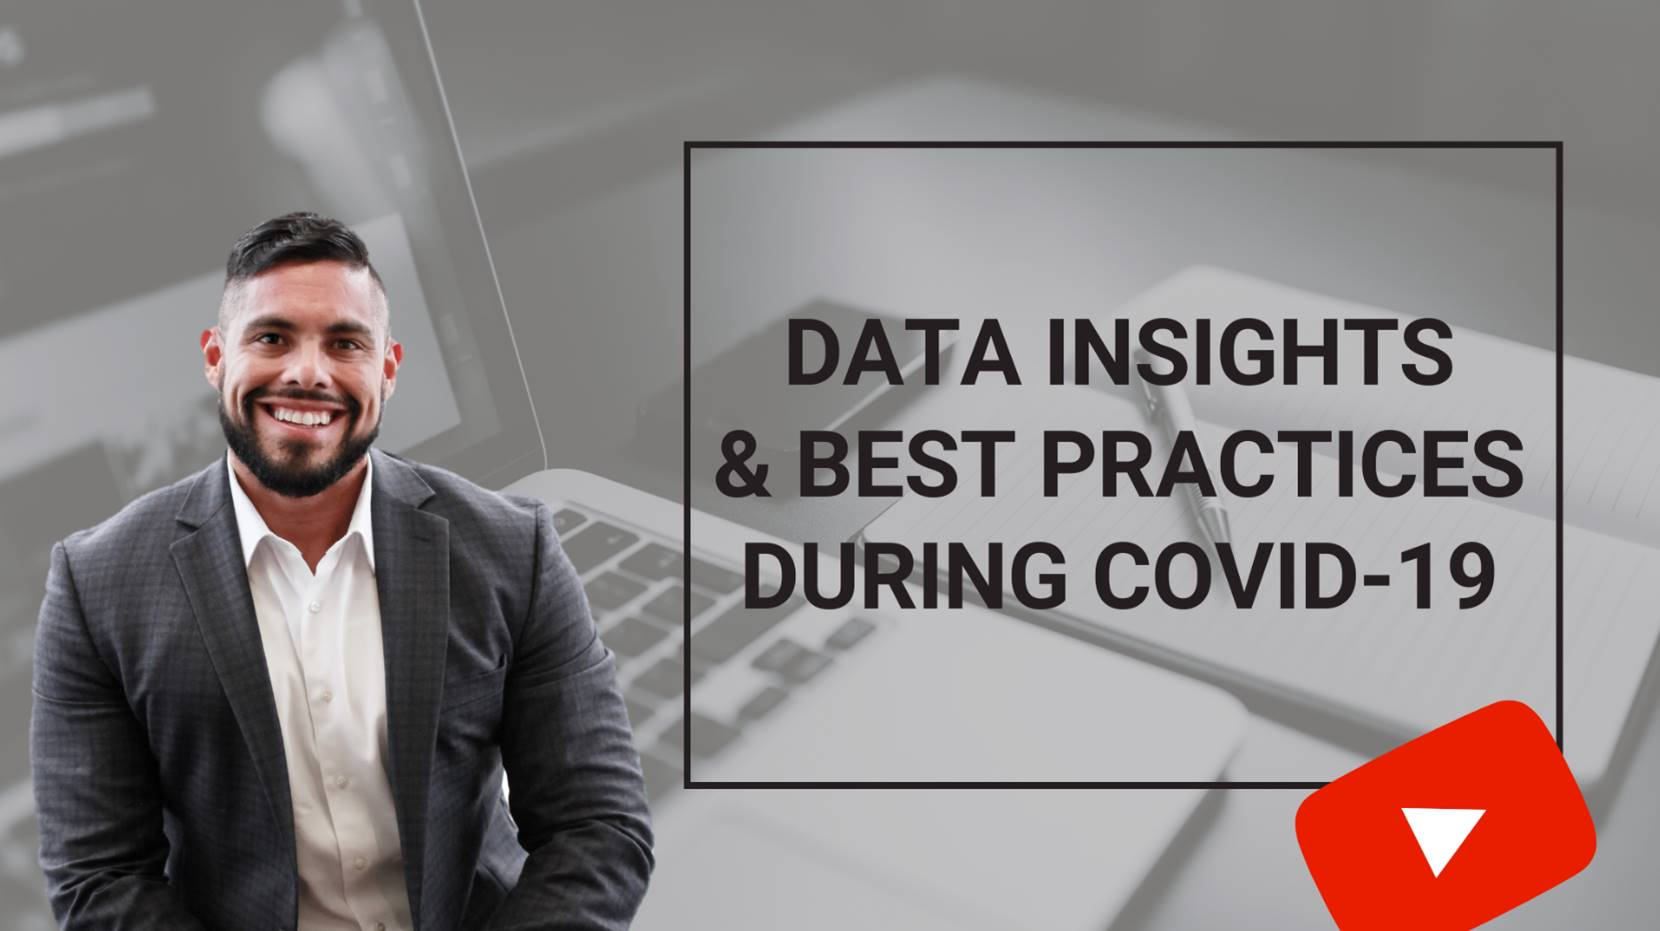 [Videos] COVID-19 Crisis - Complete Series of Best Practices